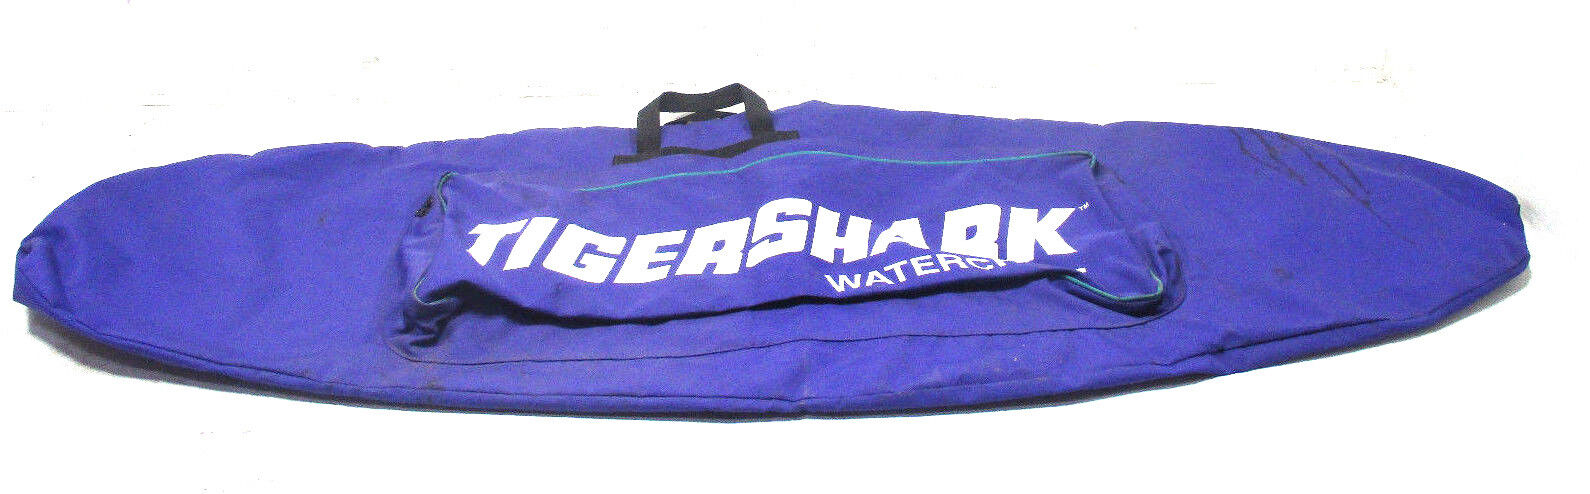 TigerShark Knee / Wake Board Storage Gear Bag